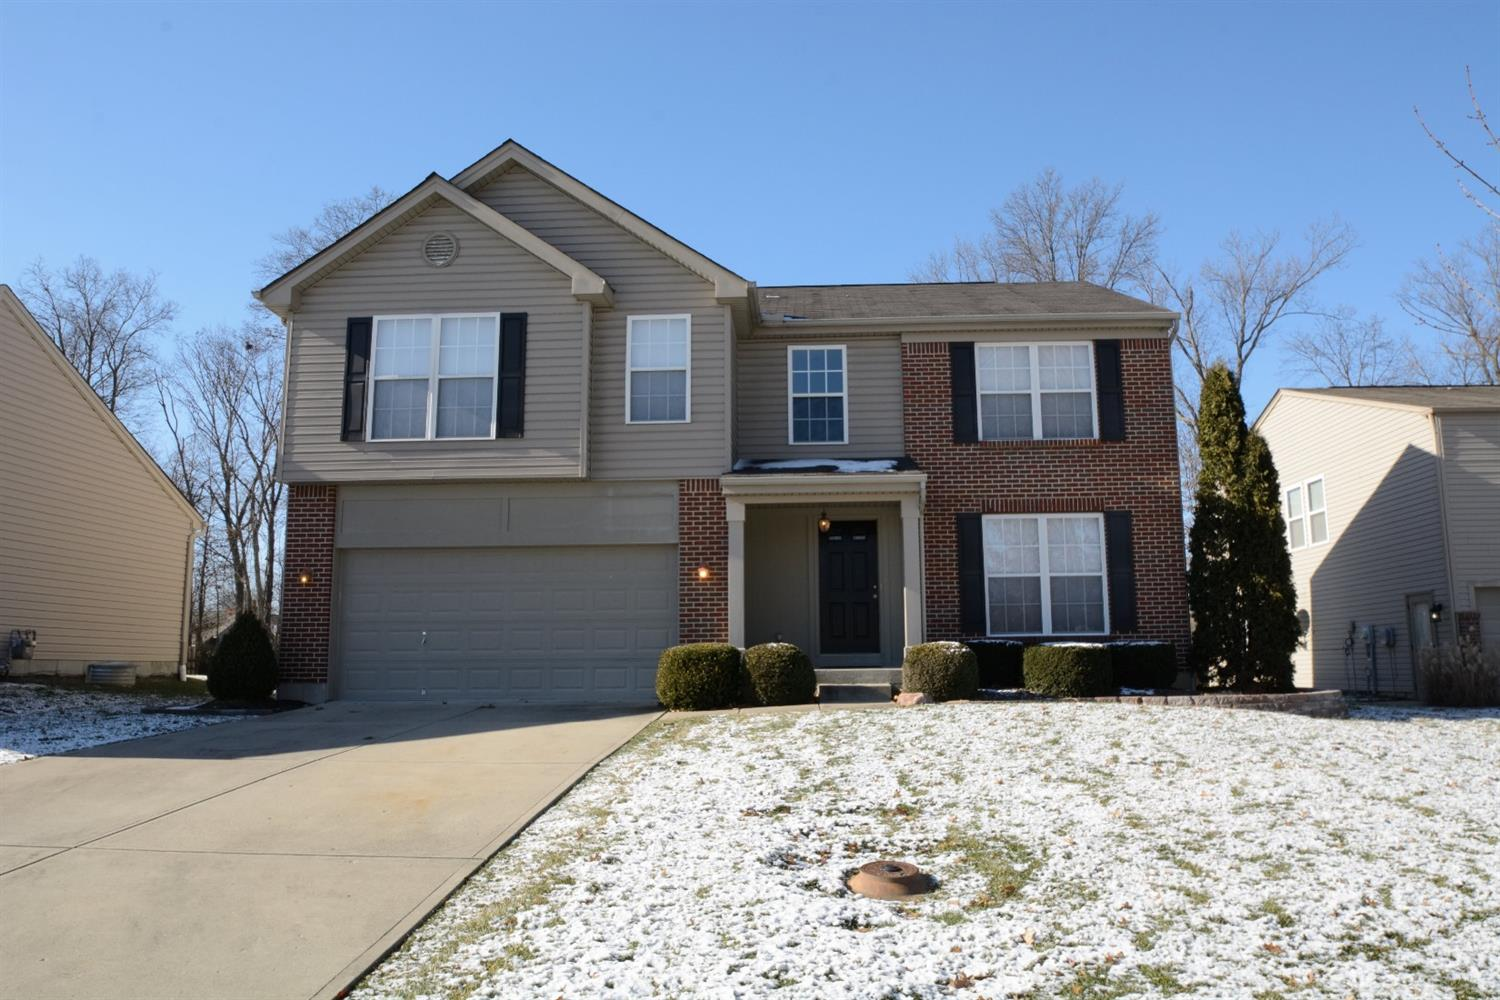 Move-in ready.4 bedrooms & 2.5 bath in a beautiful neighborhood.Hardwood entry and open foyer.Eat-in kitchen opens into large great room. Corner gas, ceramic fireplace.Finished half basement & insulated and finished garage.Community offers walking/jogging trails.